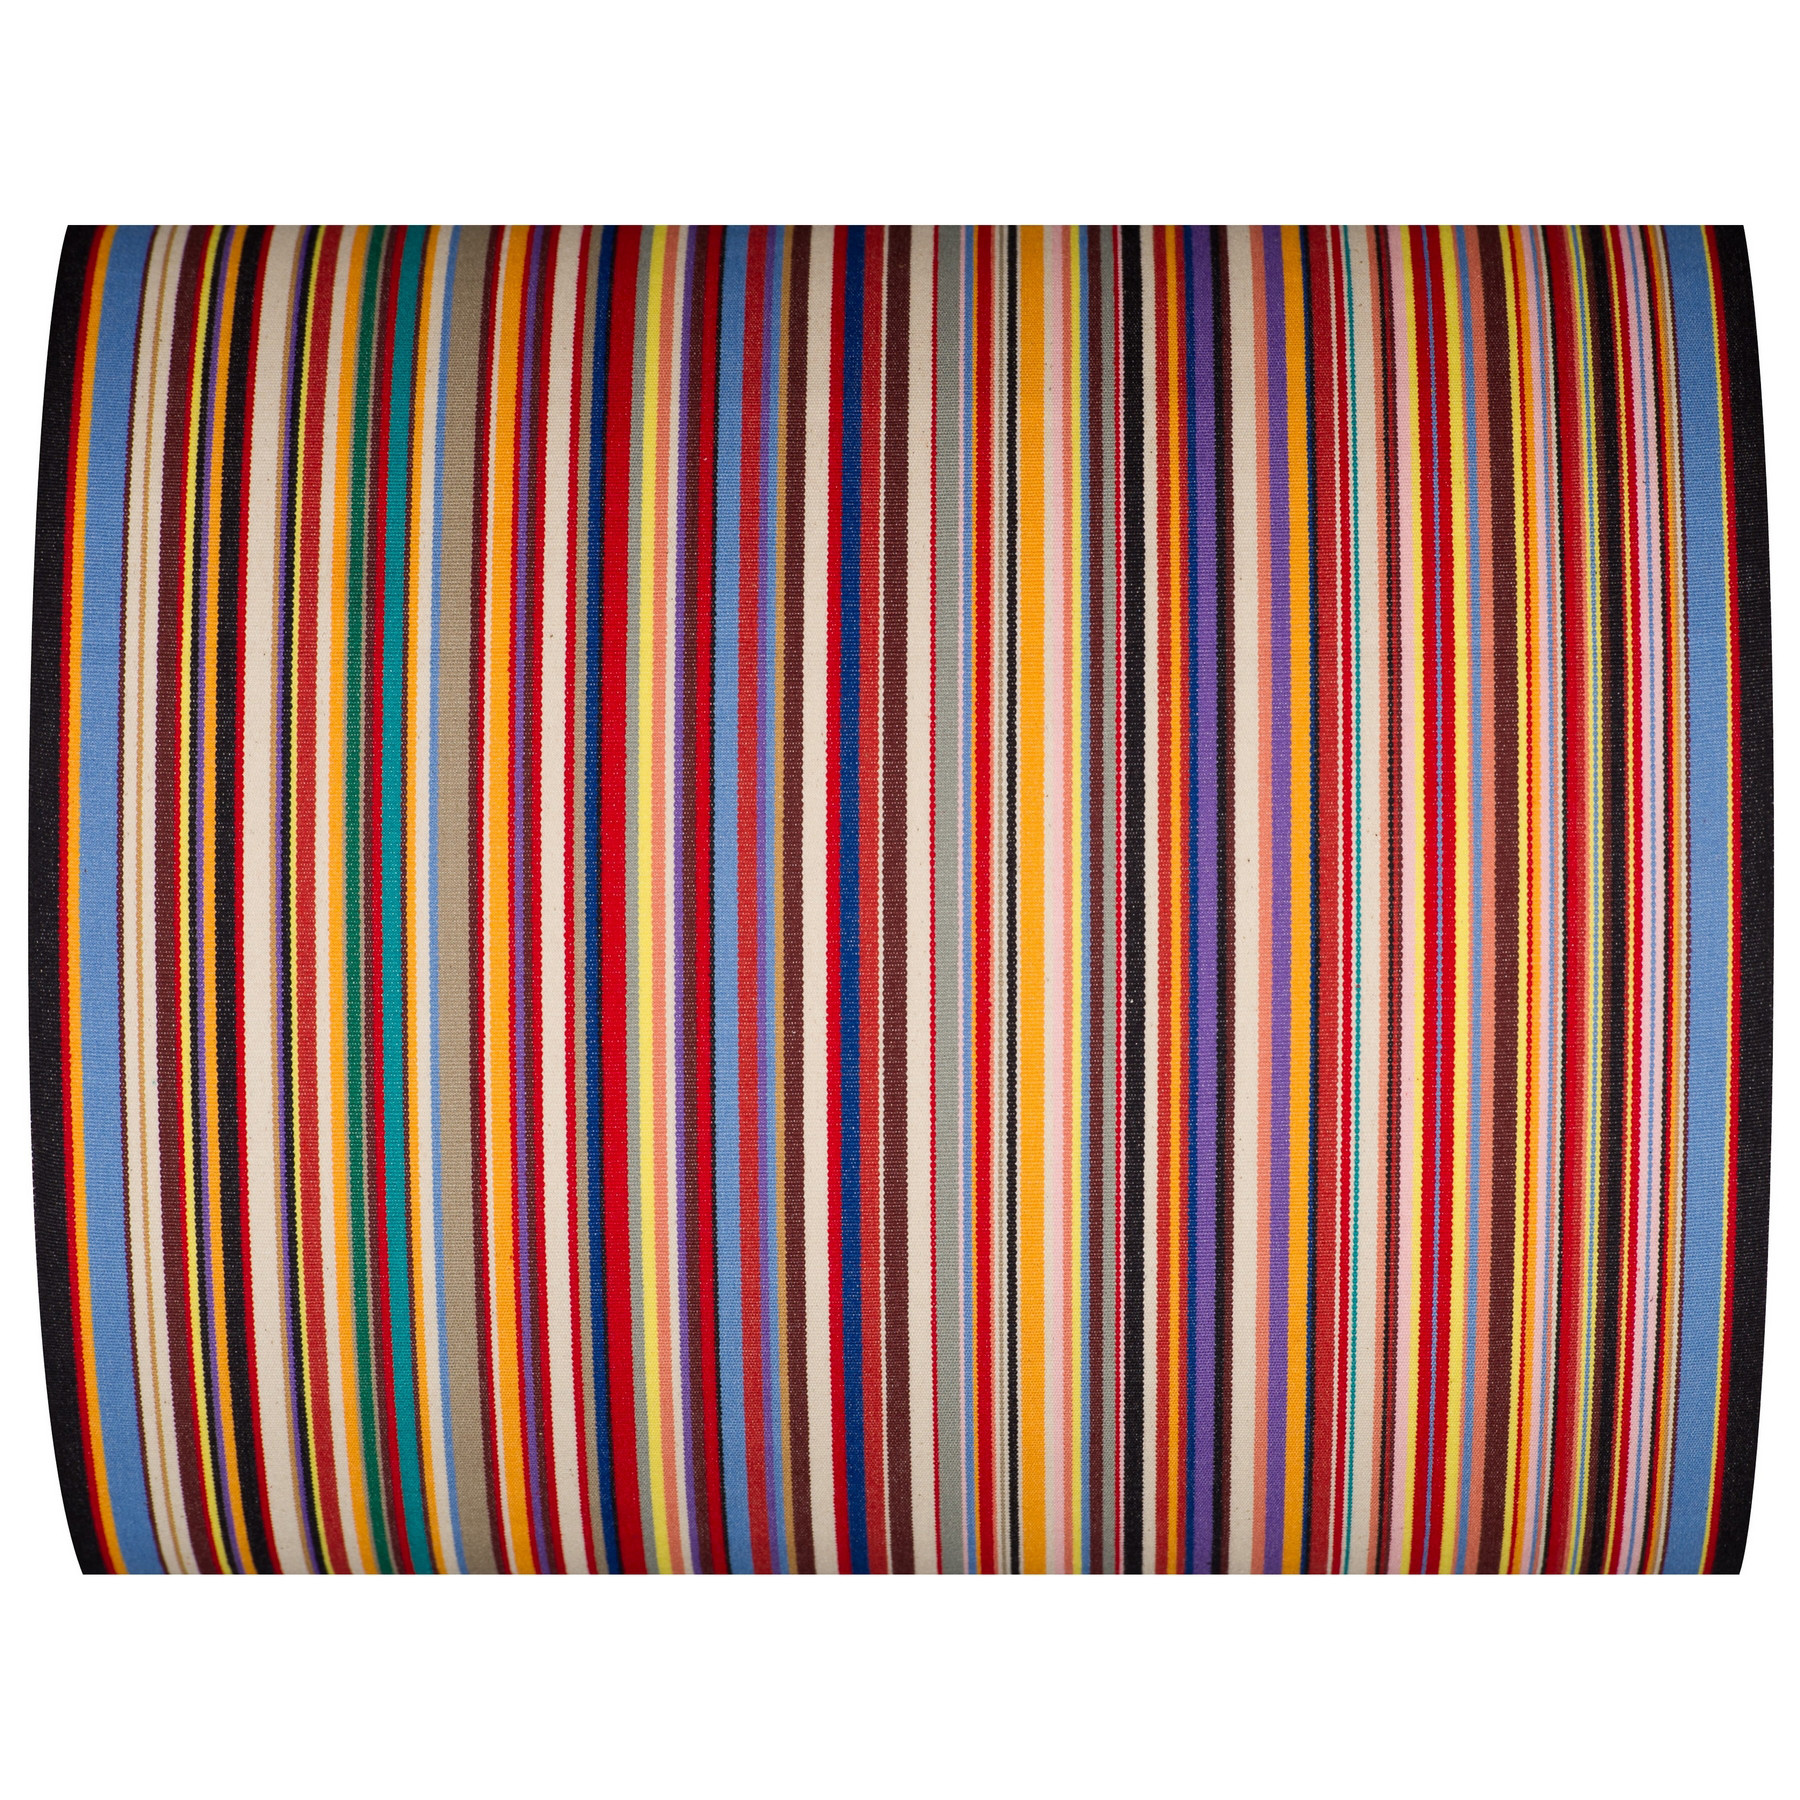 Fabric by the meter TOM 43cm